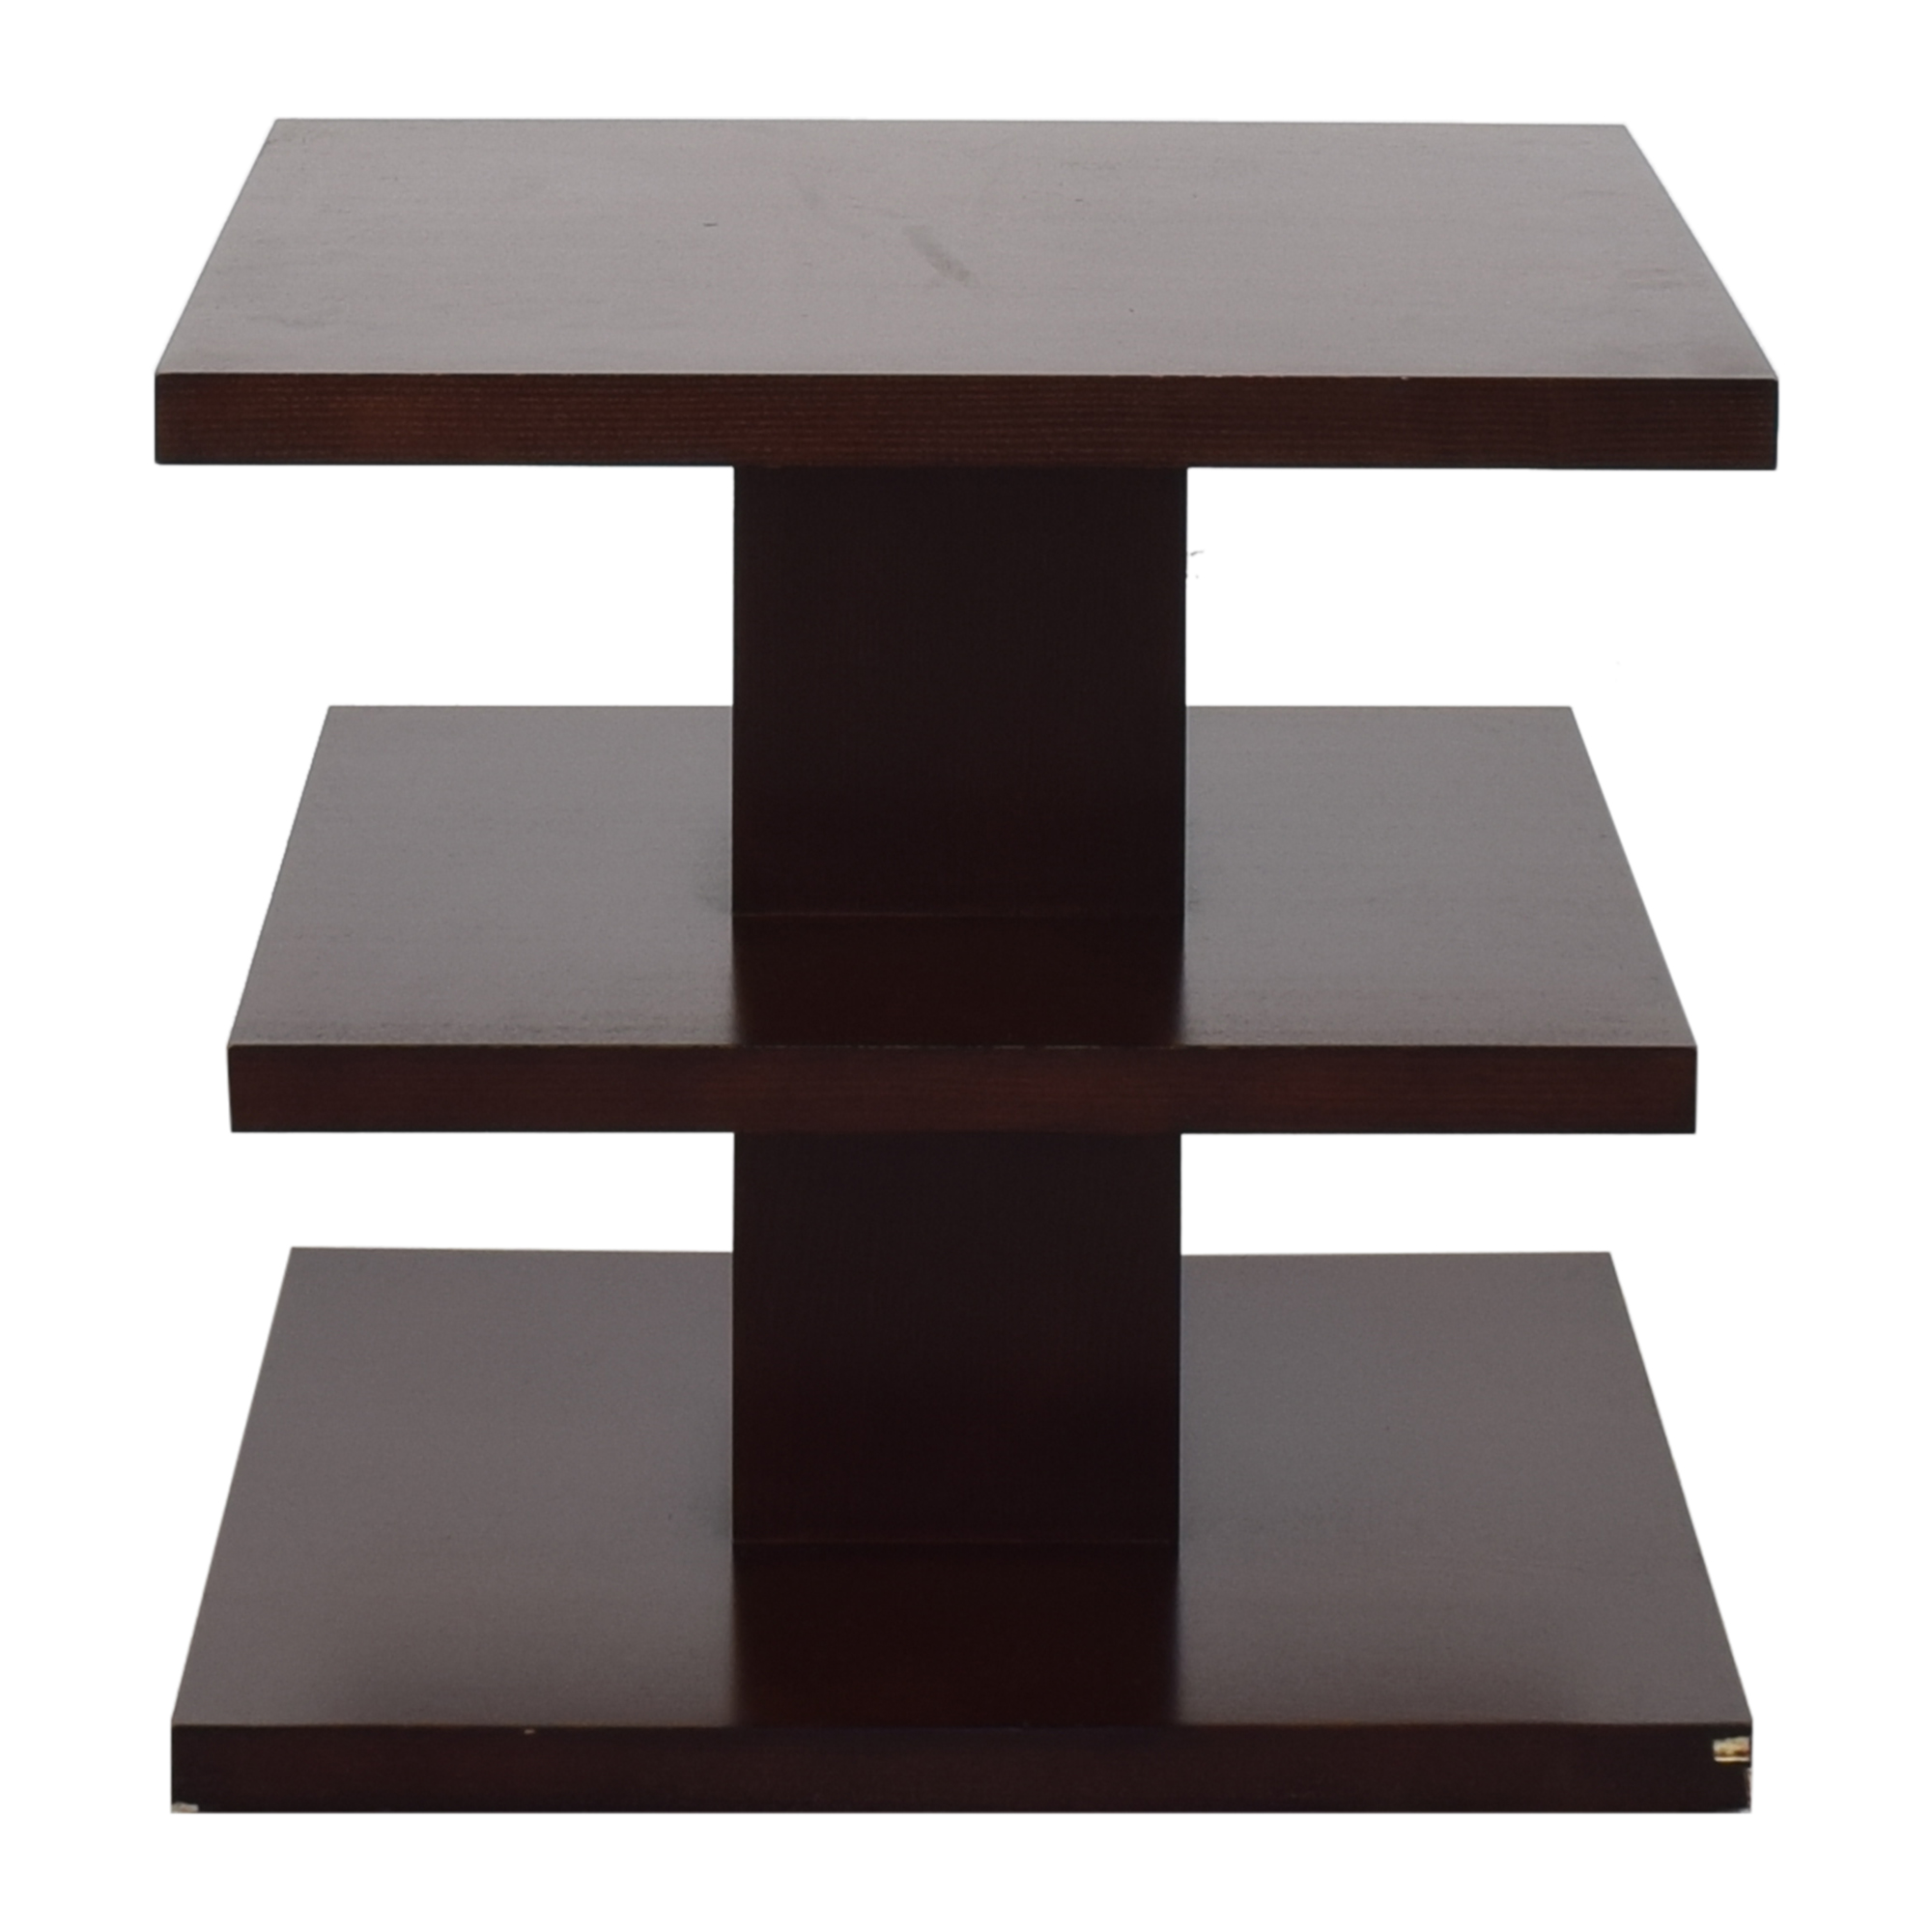 Ethan Allen Ethan Allen Square Tiered End Table ma